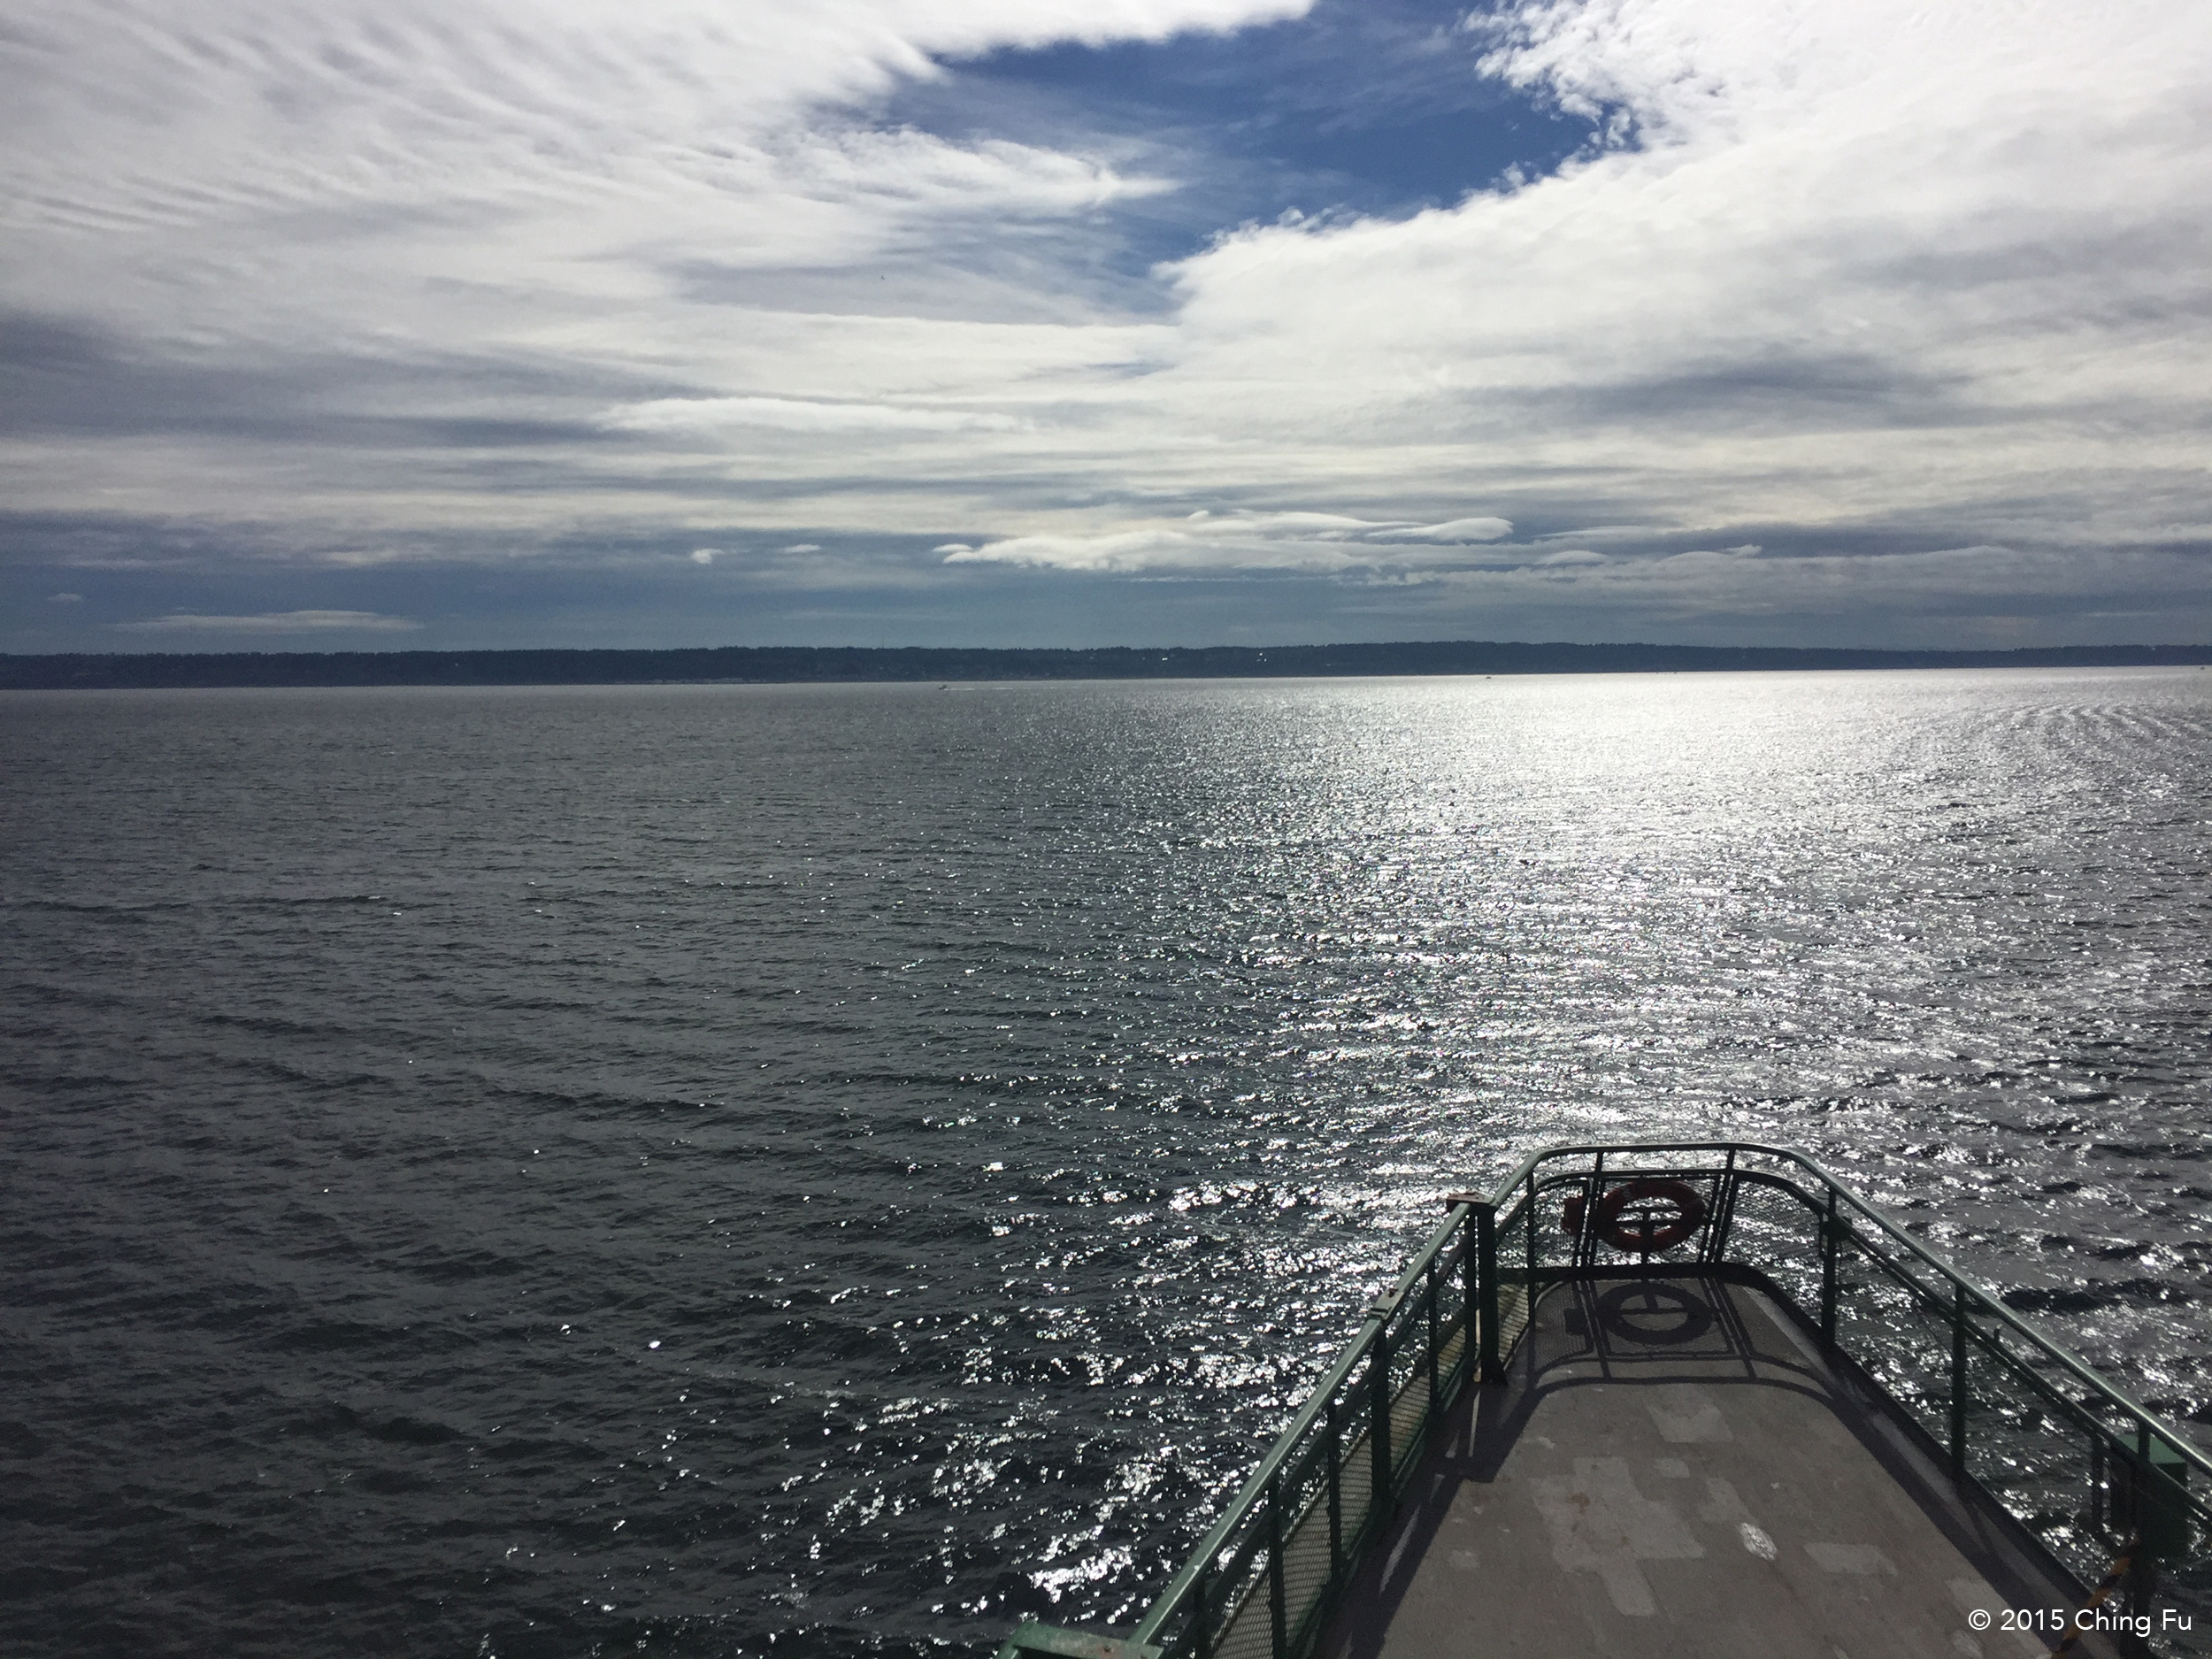 Taking the ferry out to Olympic Peninsula to look at a truck.